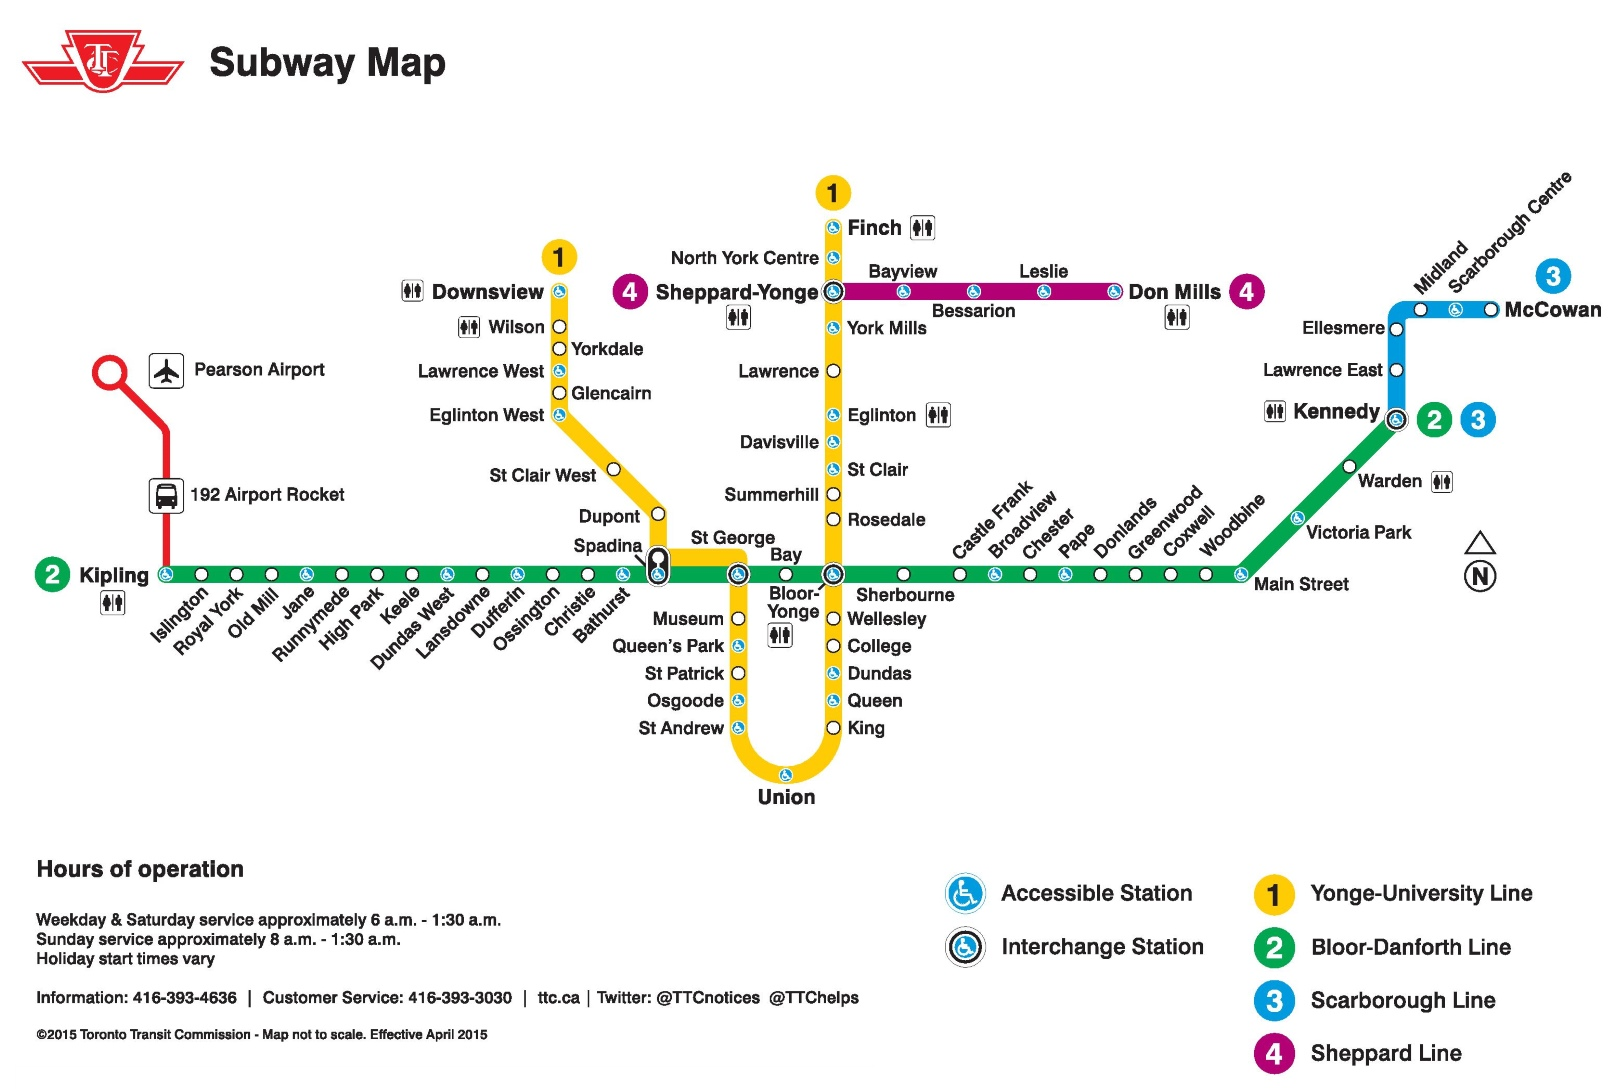 Toronto Subway Map.Toronto Subway Map